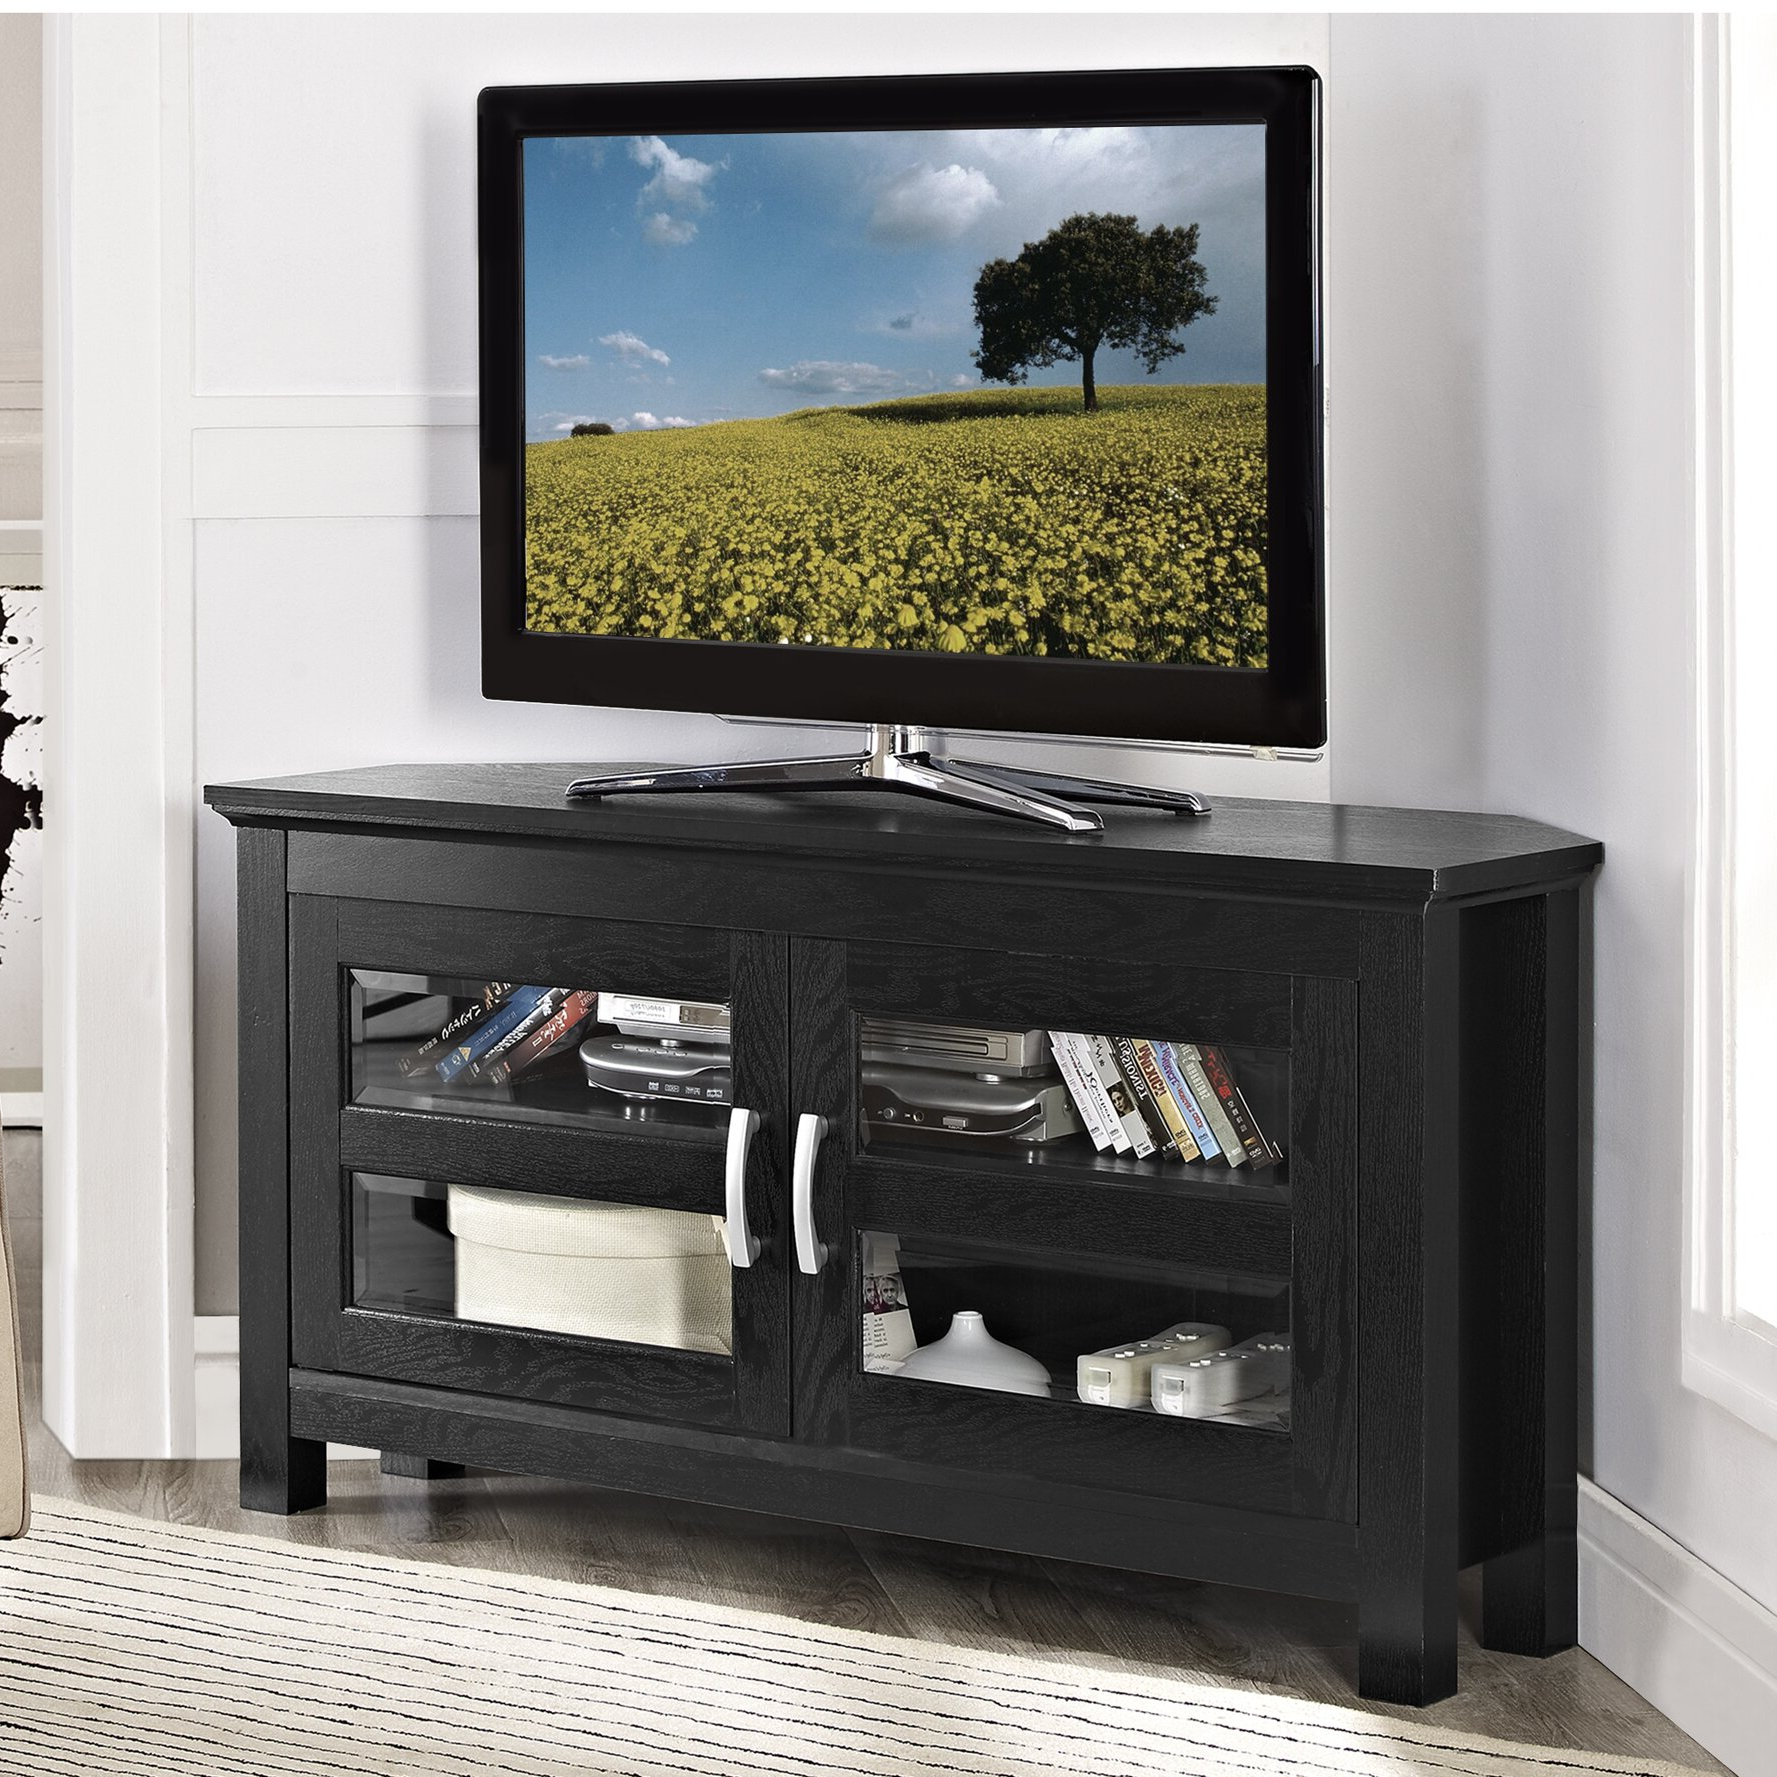 Alcott Hill Sulyard Wood Corner Tv Stand & Reviews | Wayfair Within Hex Corner Tv Stands (View 3 of 20)